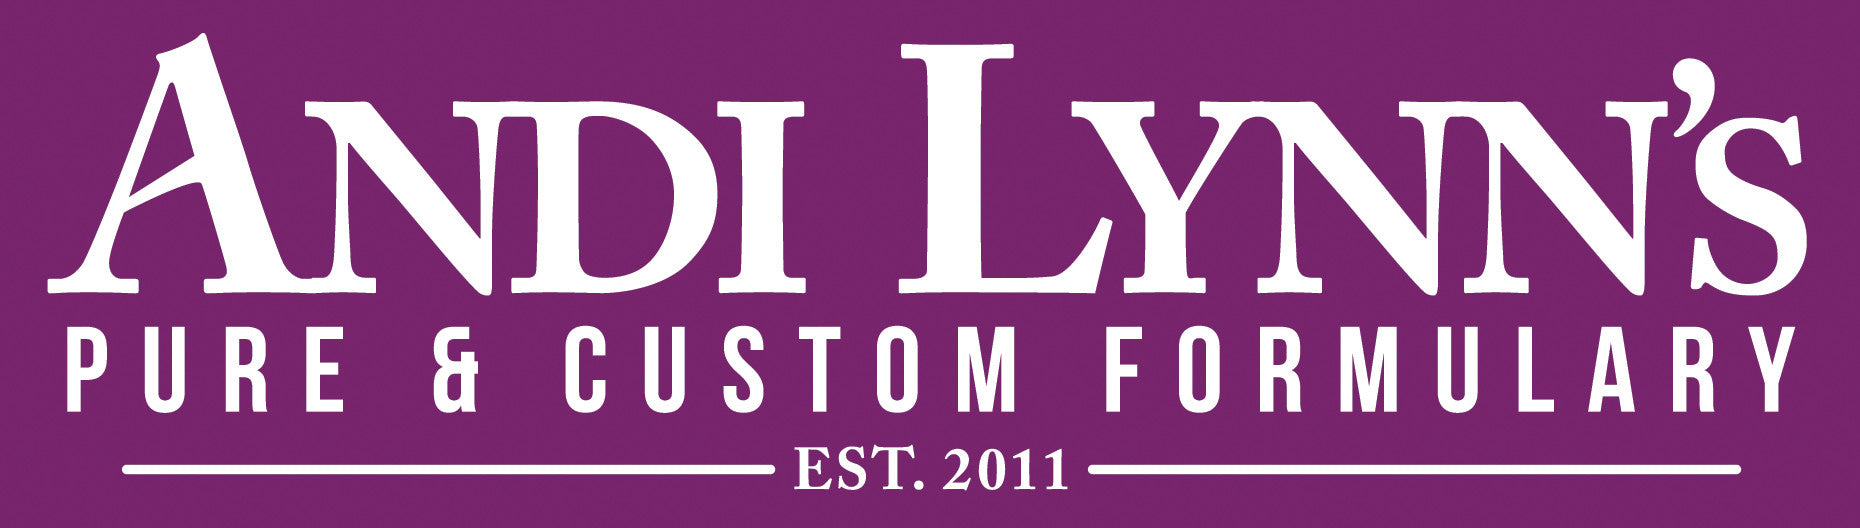 Andi Lynn's Pure & Custom Formulary